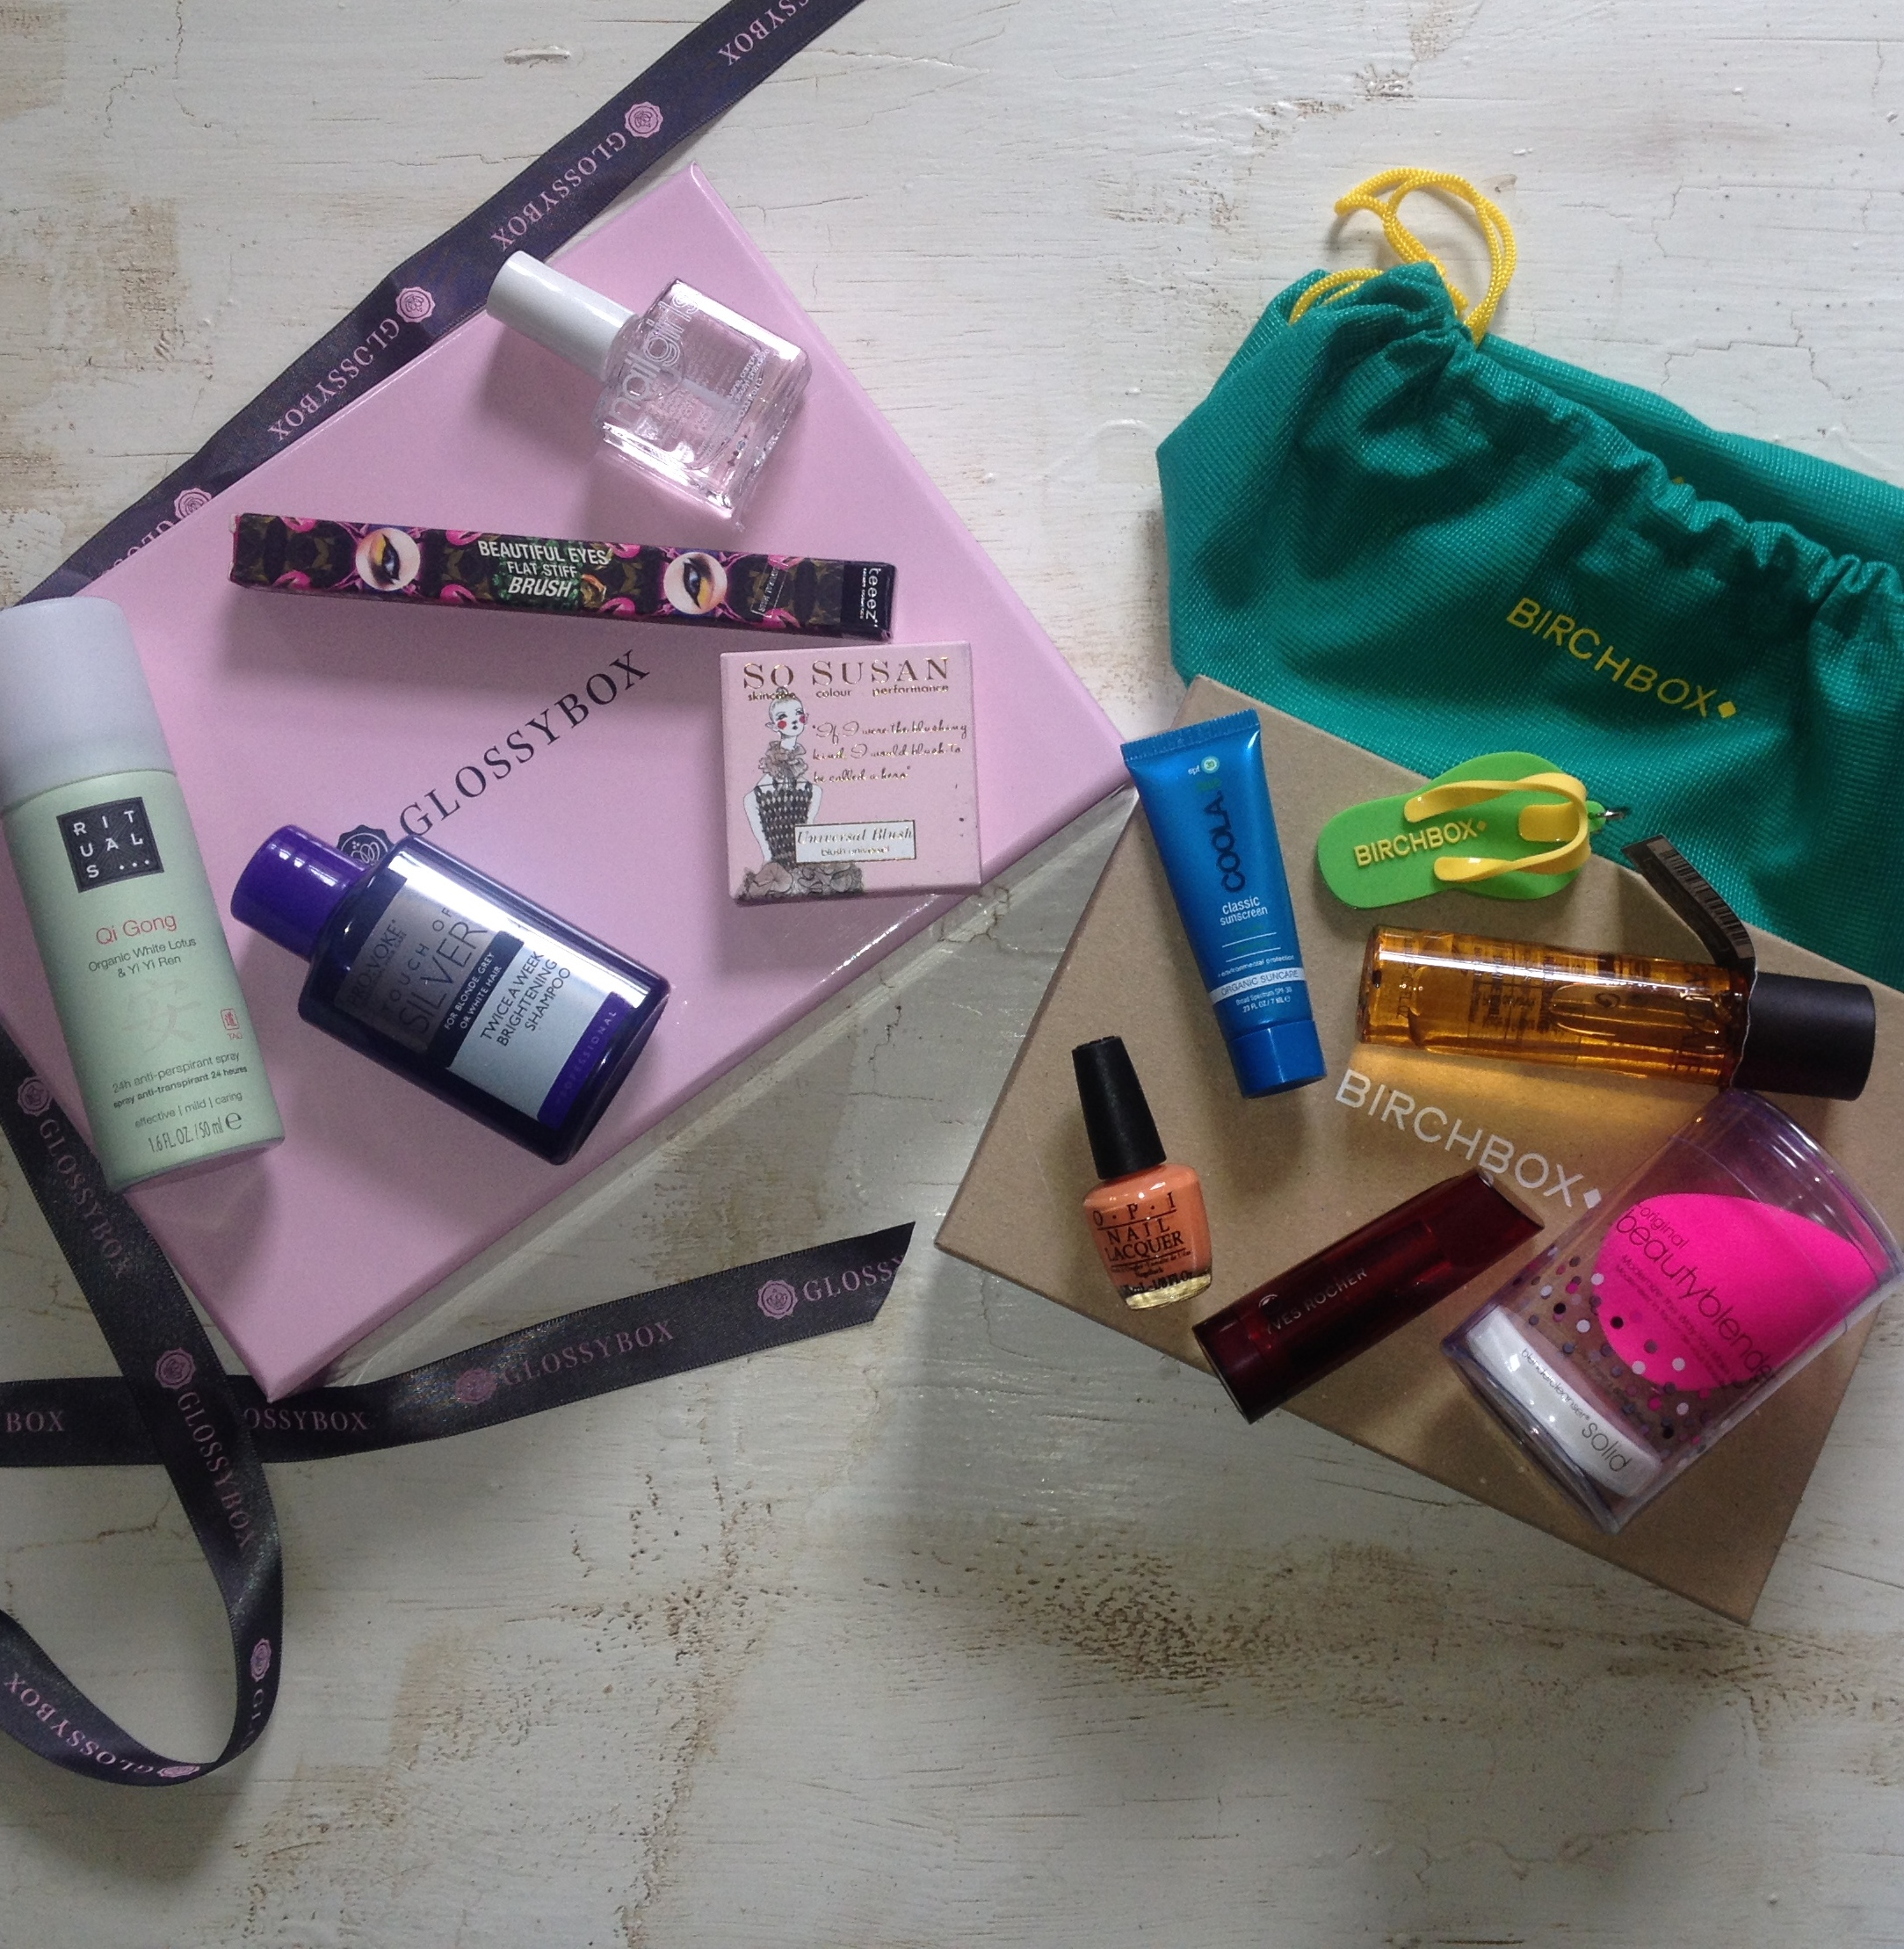 Birchbox & Glossybox - June 2014